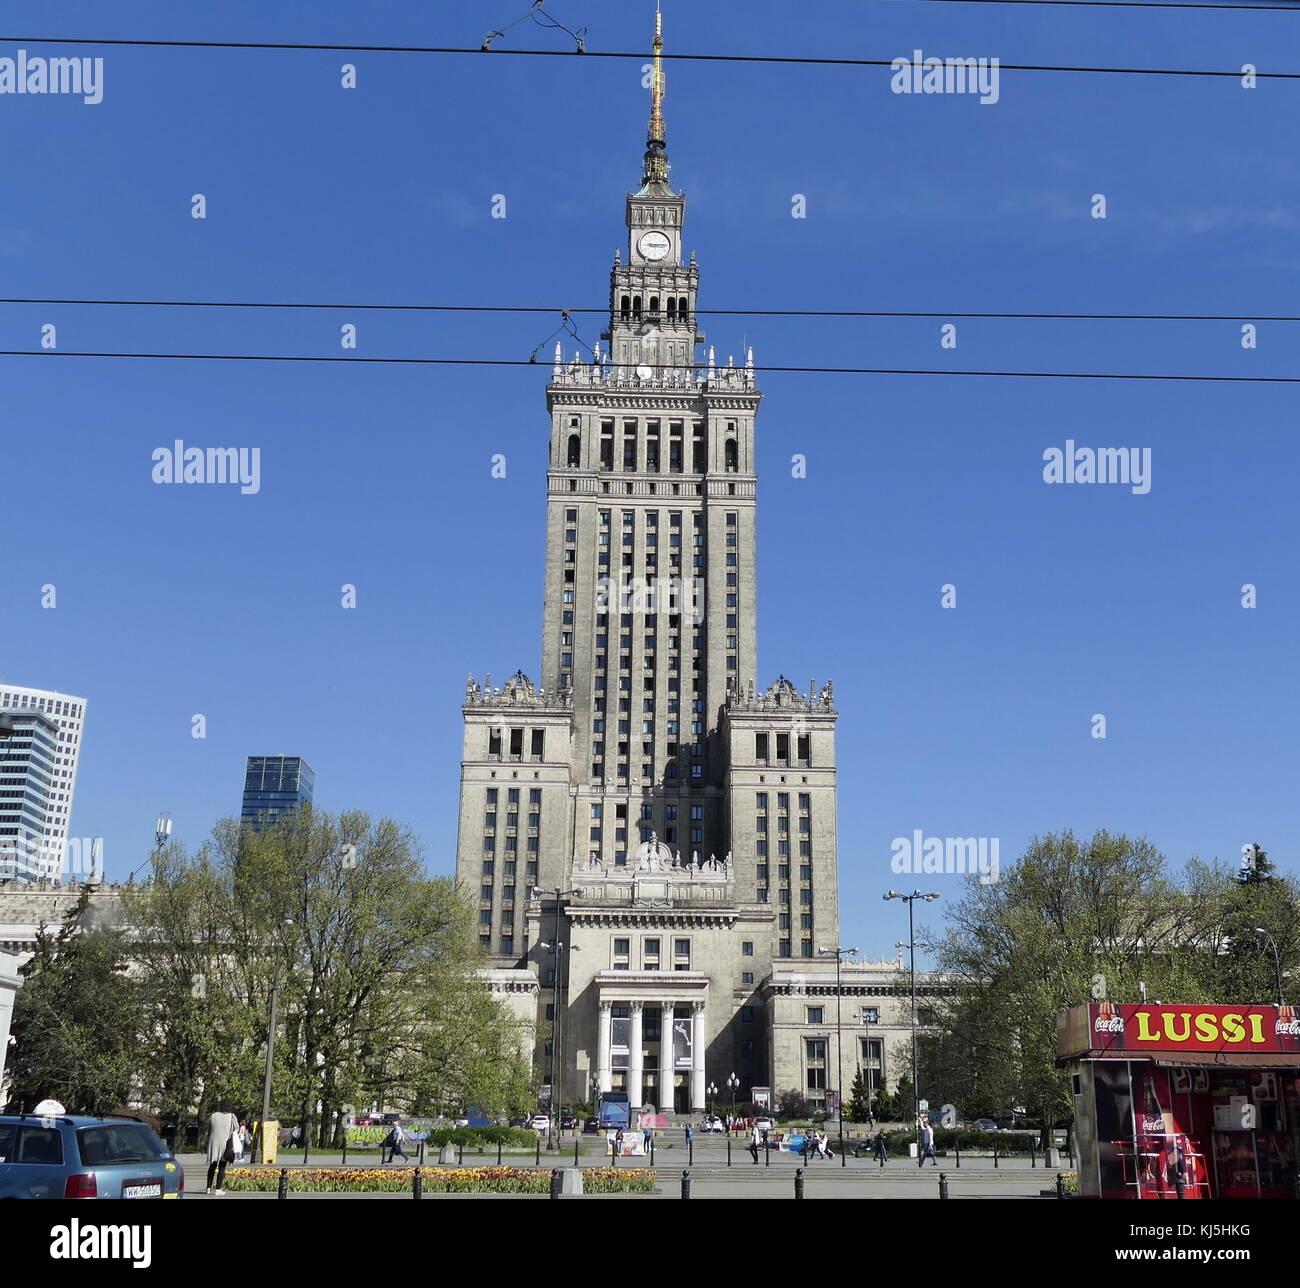 Constructed in 1955, the Palace of Culture and Science is a notable high-rise building in Warsaw, Poland. Stock Photo